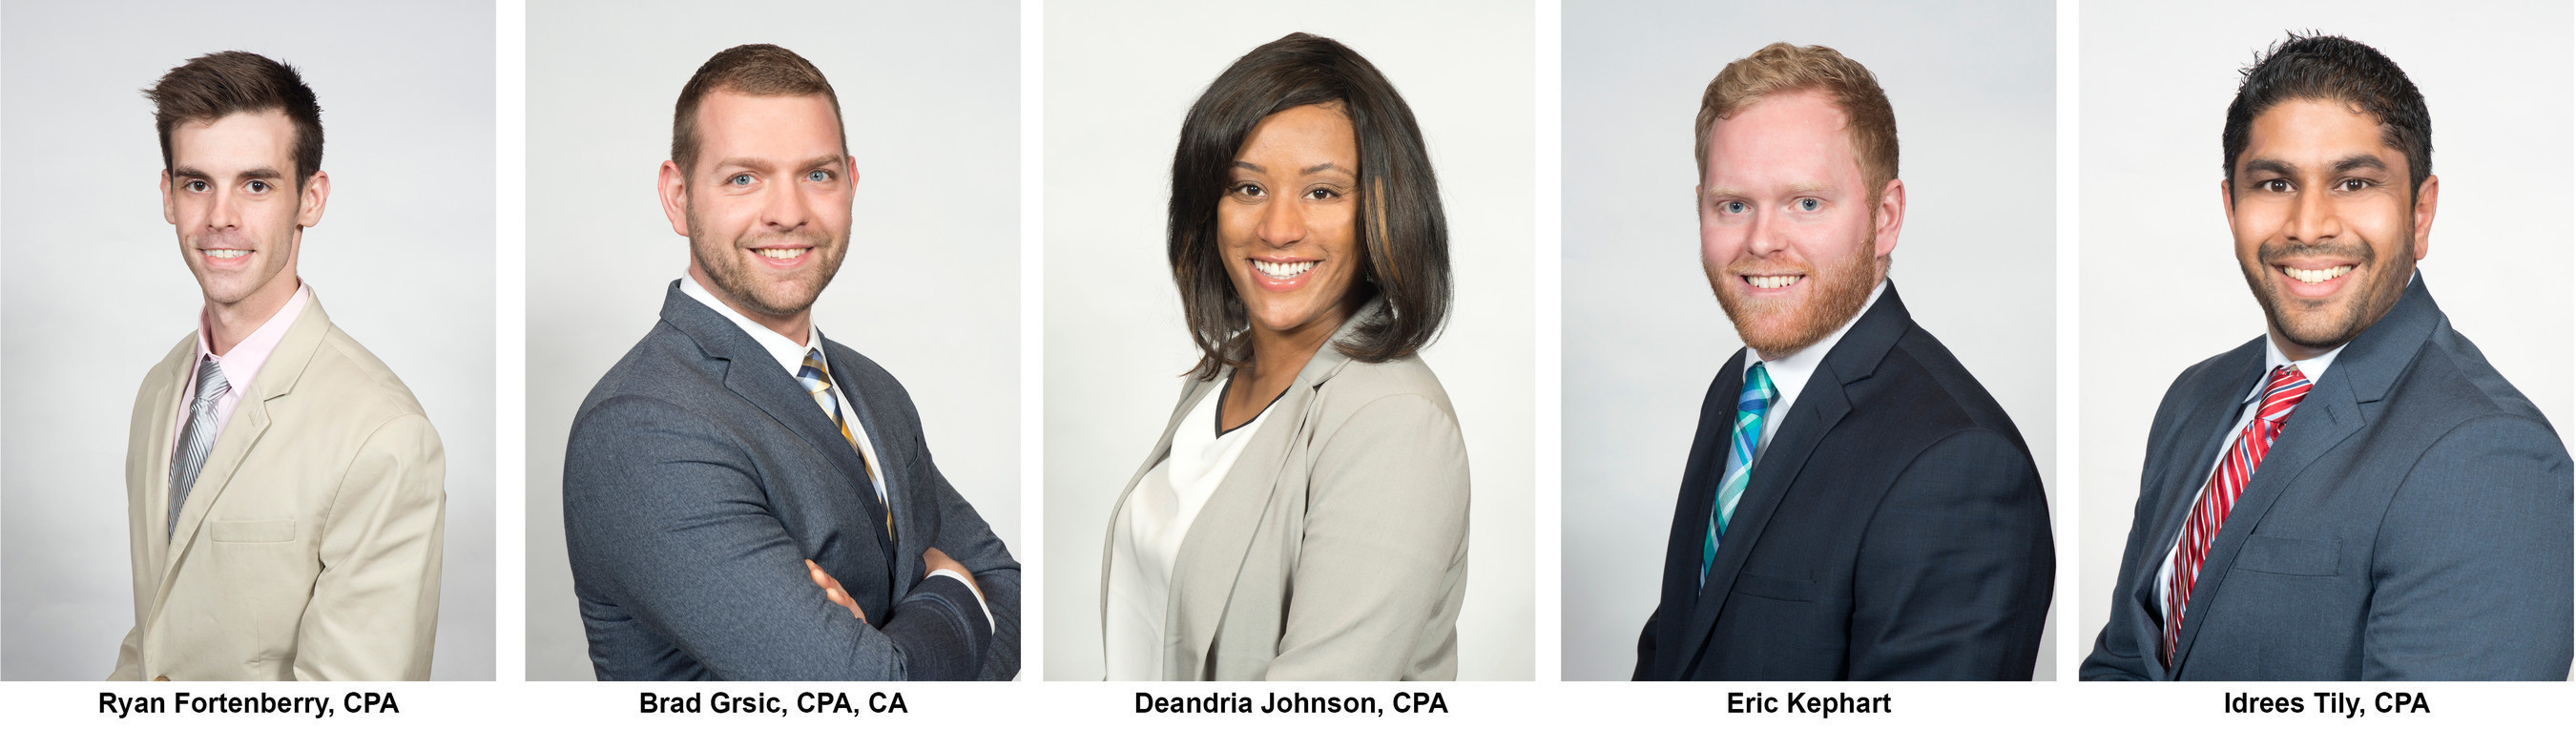 The Siegfried Group Welcomes New Professionals from the DC Metro and Houston Markets for New Hire